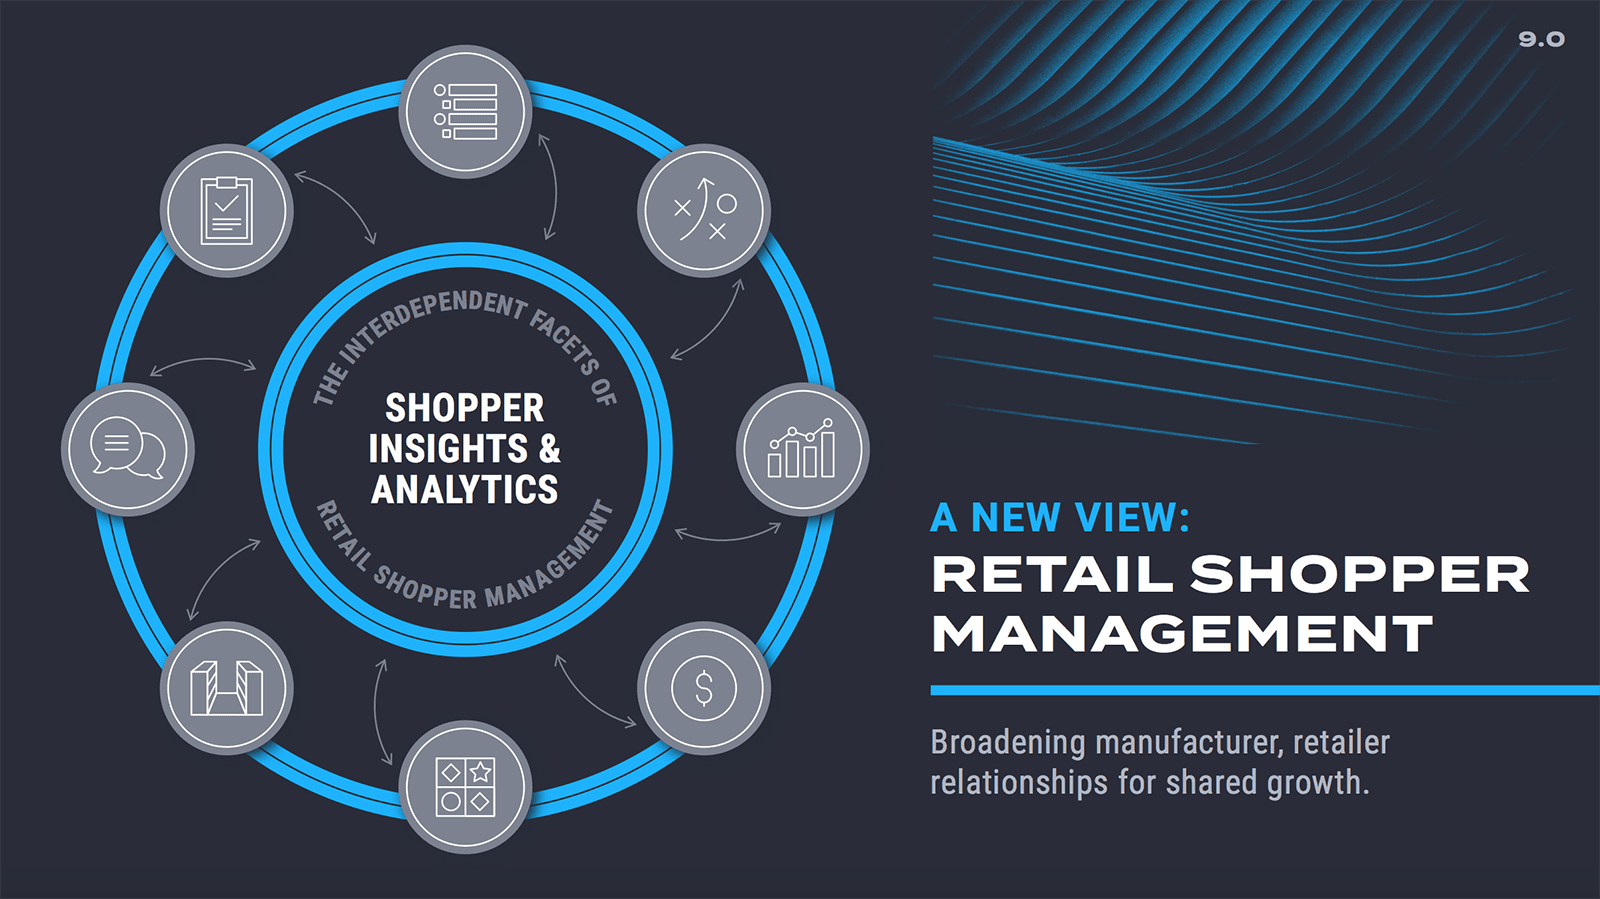 Retail Shopper Management